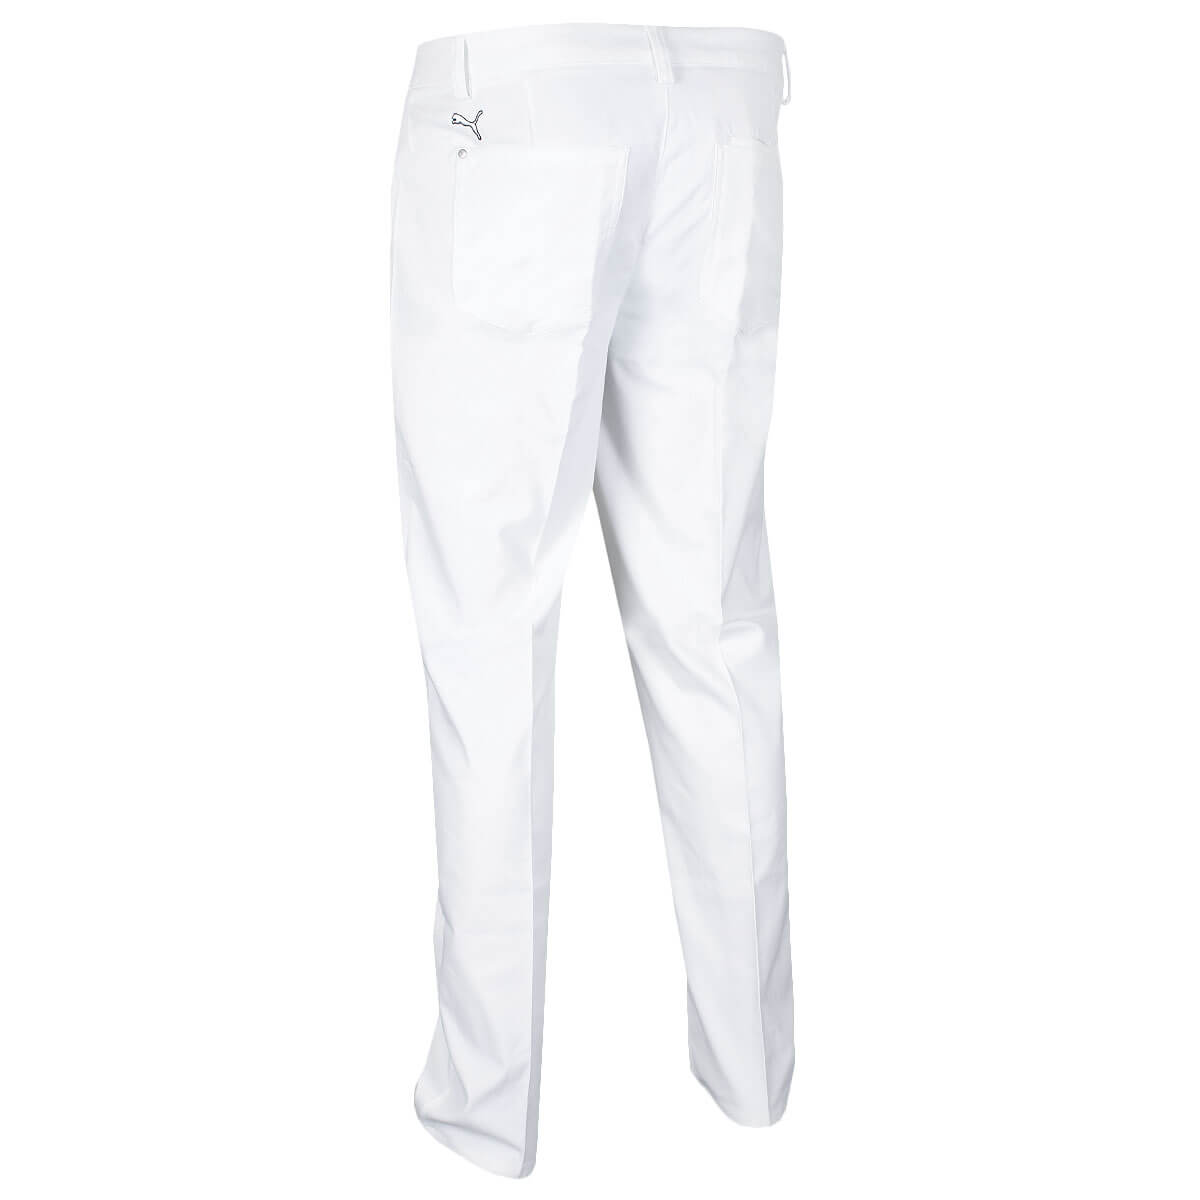 Puma-Golf-Mens-6-Pocket-Pant-DryCELL-Performance-Stretch-Trousers-47-OFF-RRP thumbnail 6